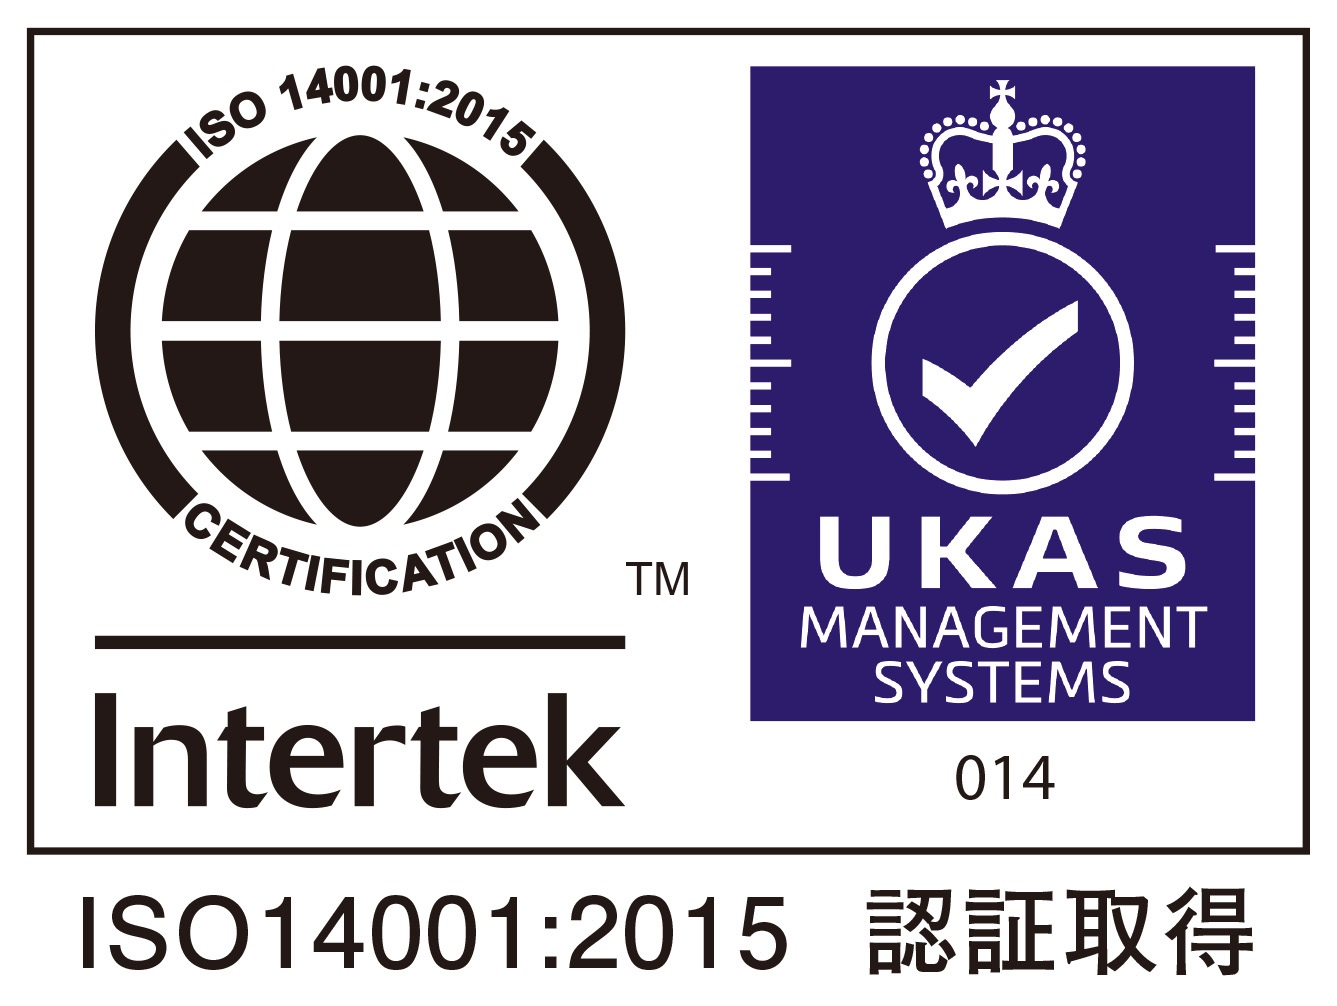 ISO14001 認証登録証明書